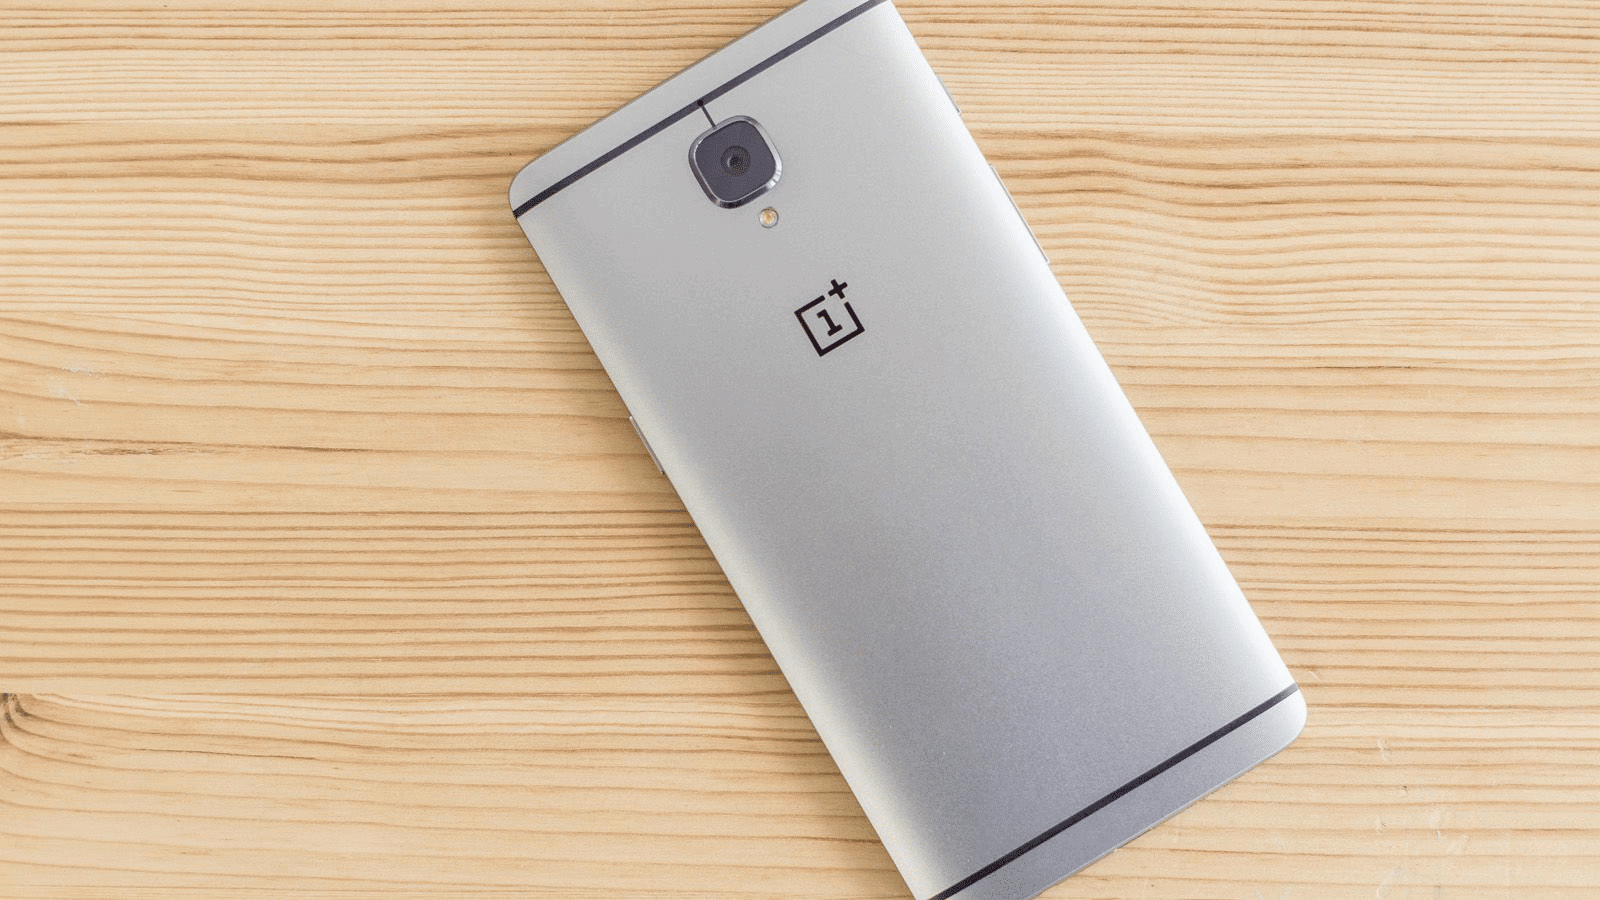 How To Install Oxygen OS 4.0.1 Official Update on OnePlus 3 1